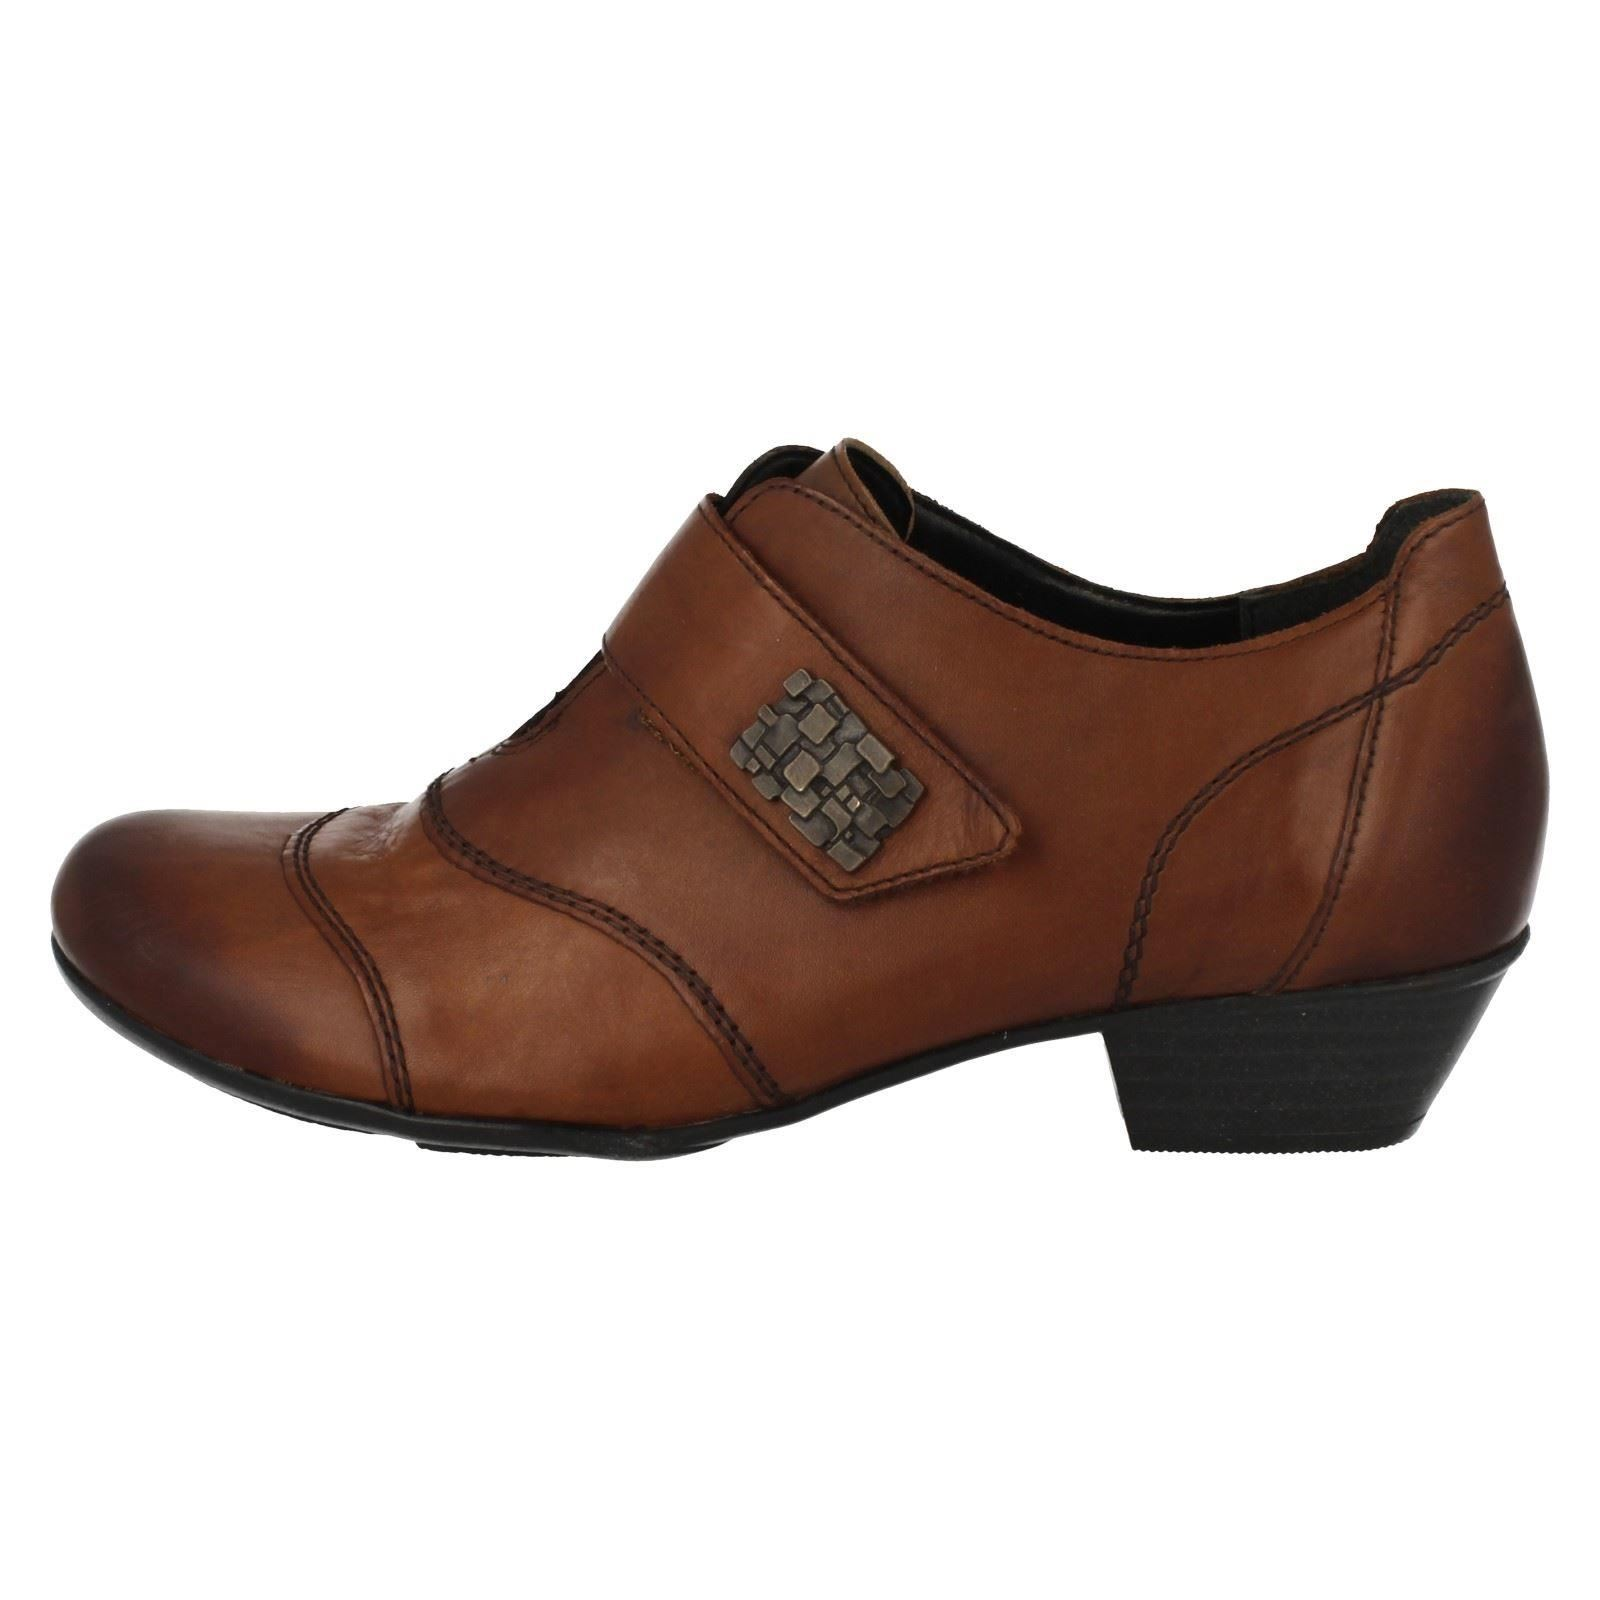 Trouser 'd7347' Brown Ladies Smart Remonte Shoes EqAOOBw